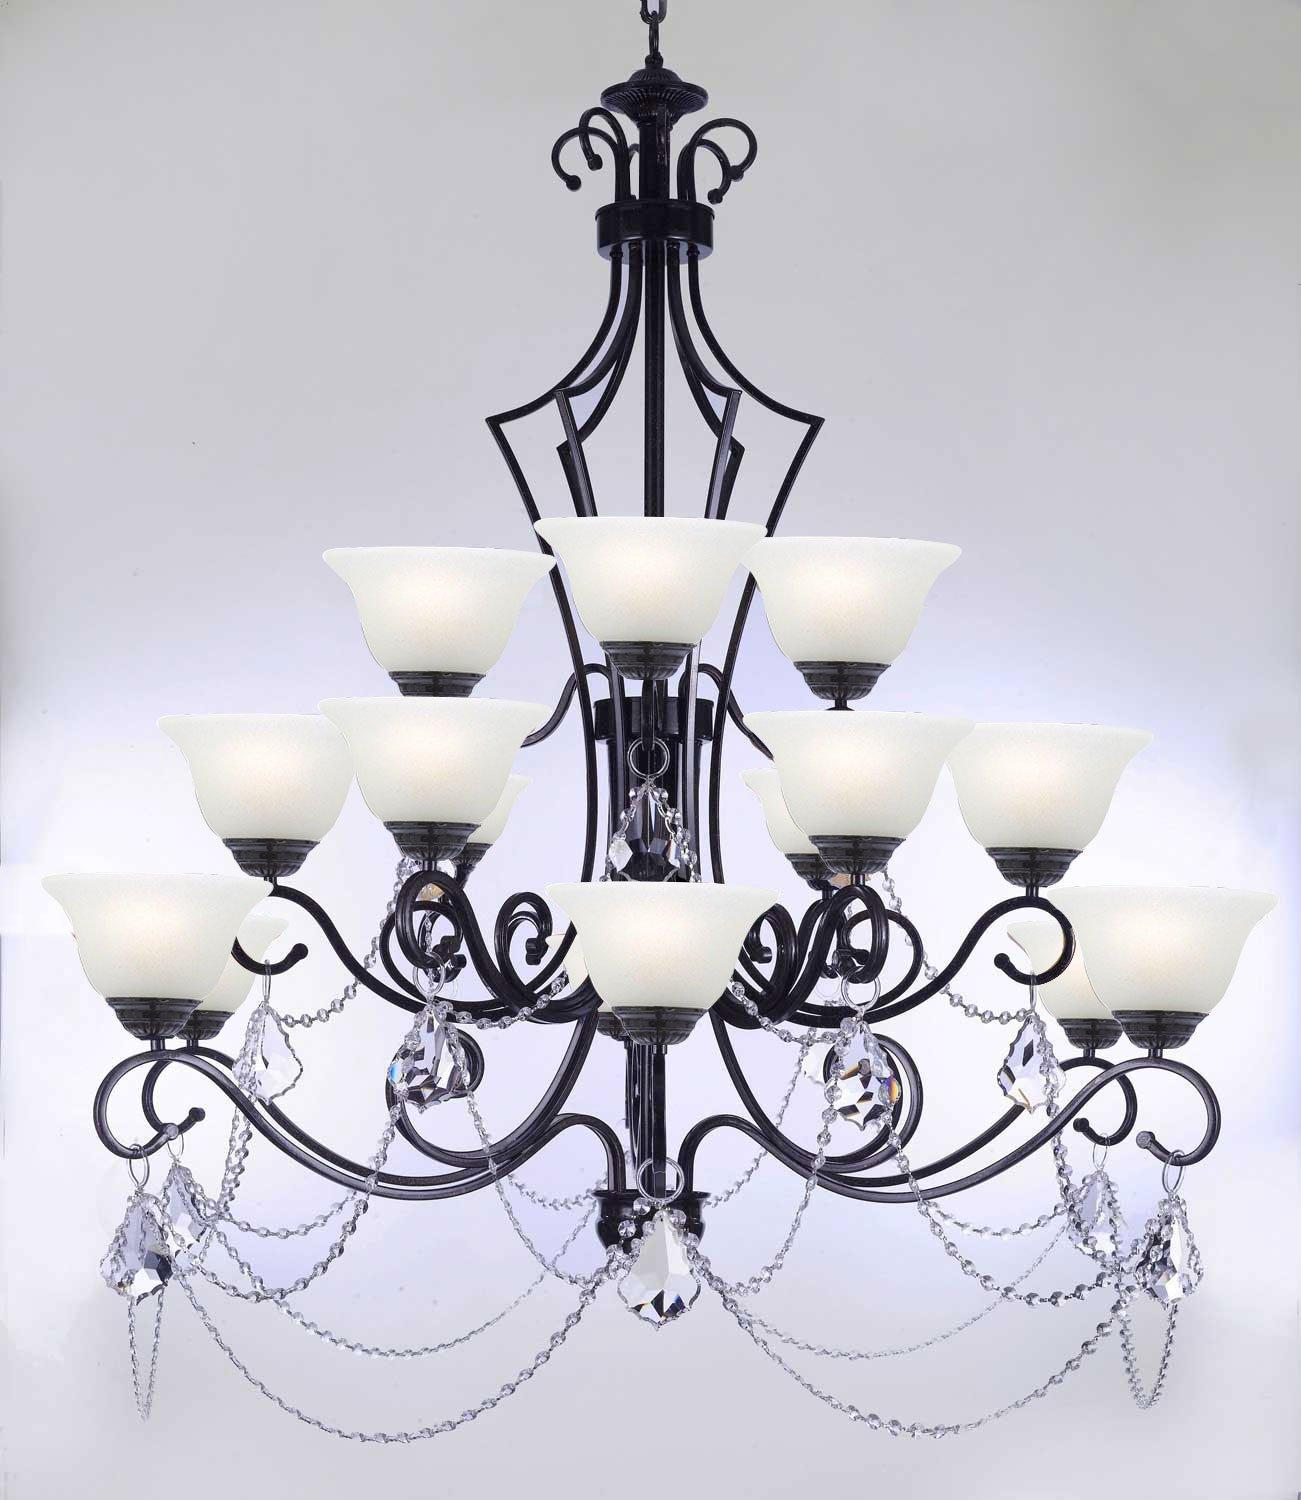 Wrought Iron Chandelier Lighting Empress Crystal Chandelier Lighting